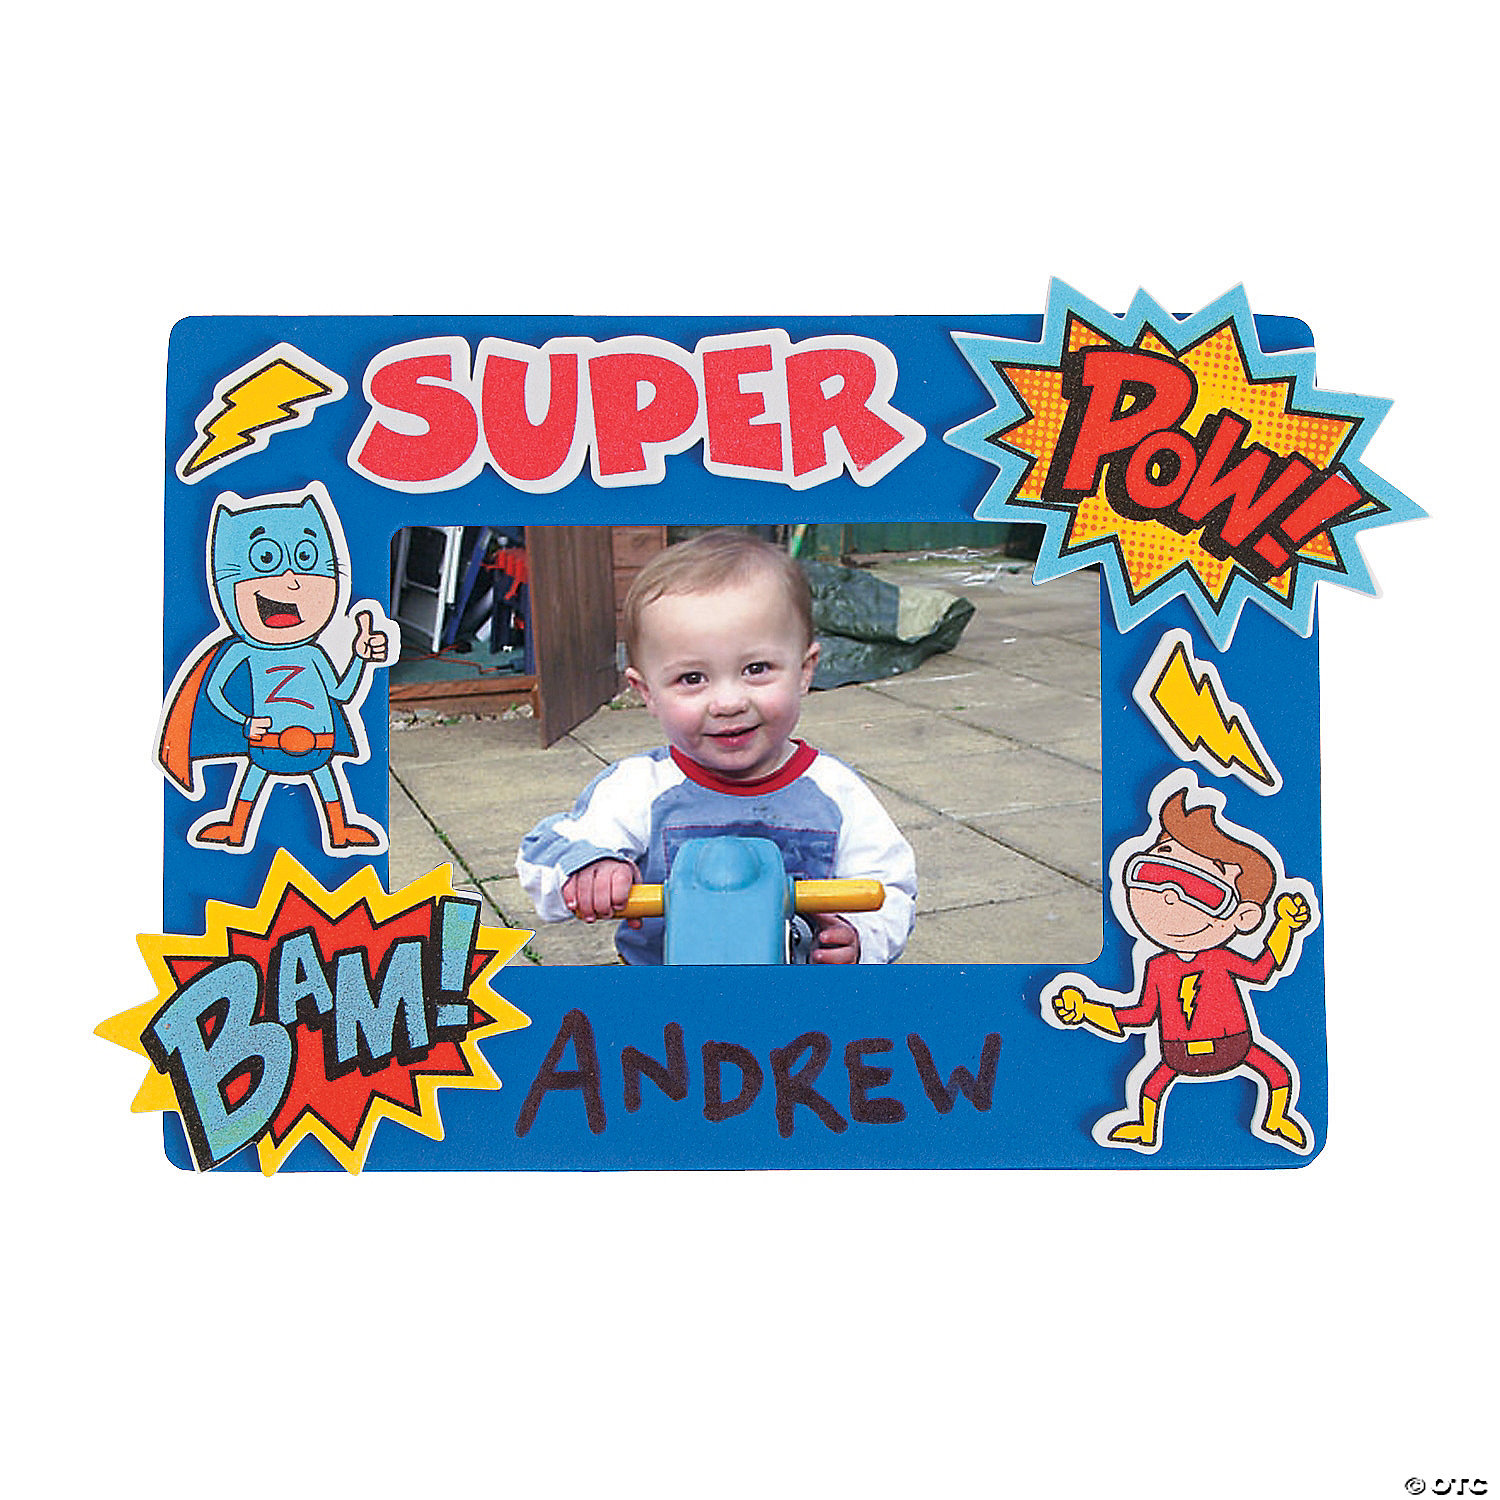 Photo crafts picture frame crafts photo magnets picture frame superhero picture frame craft kit jeuxipadfo Gallery